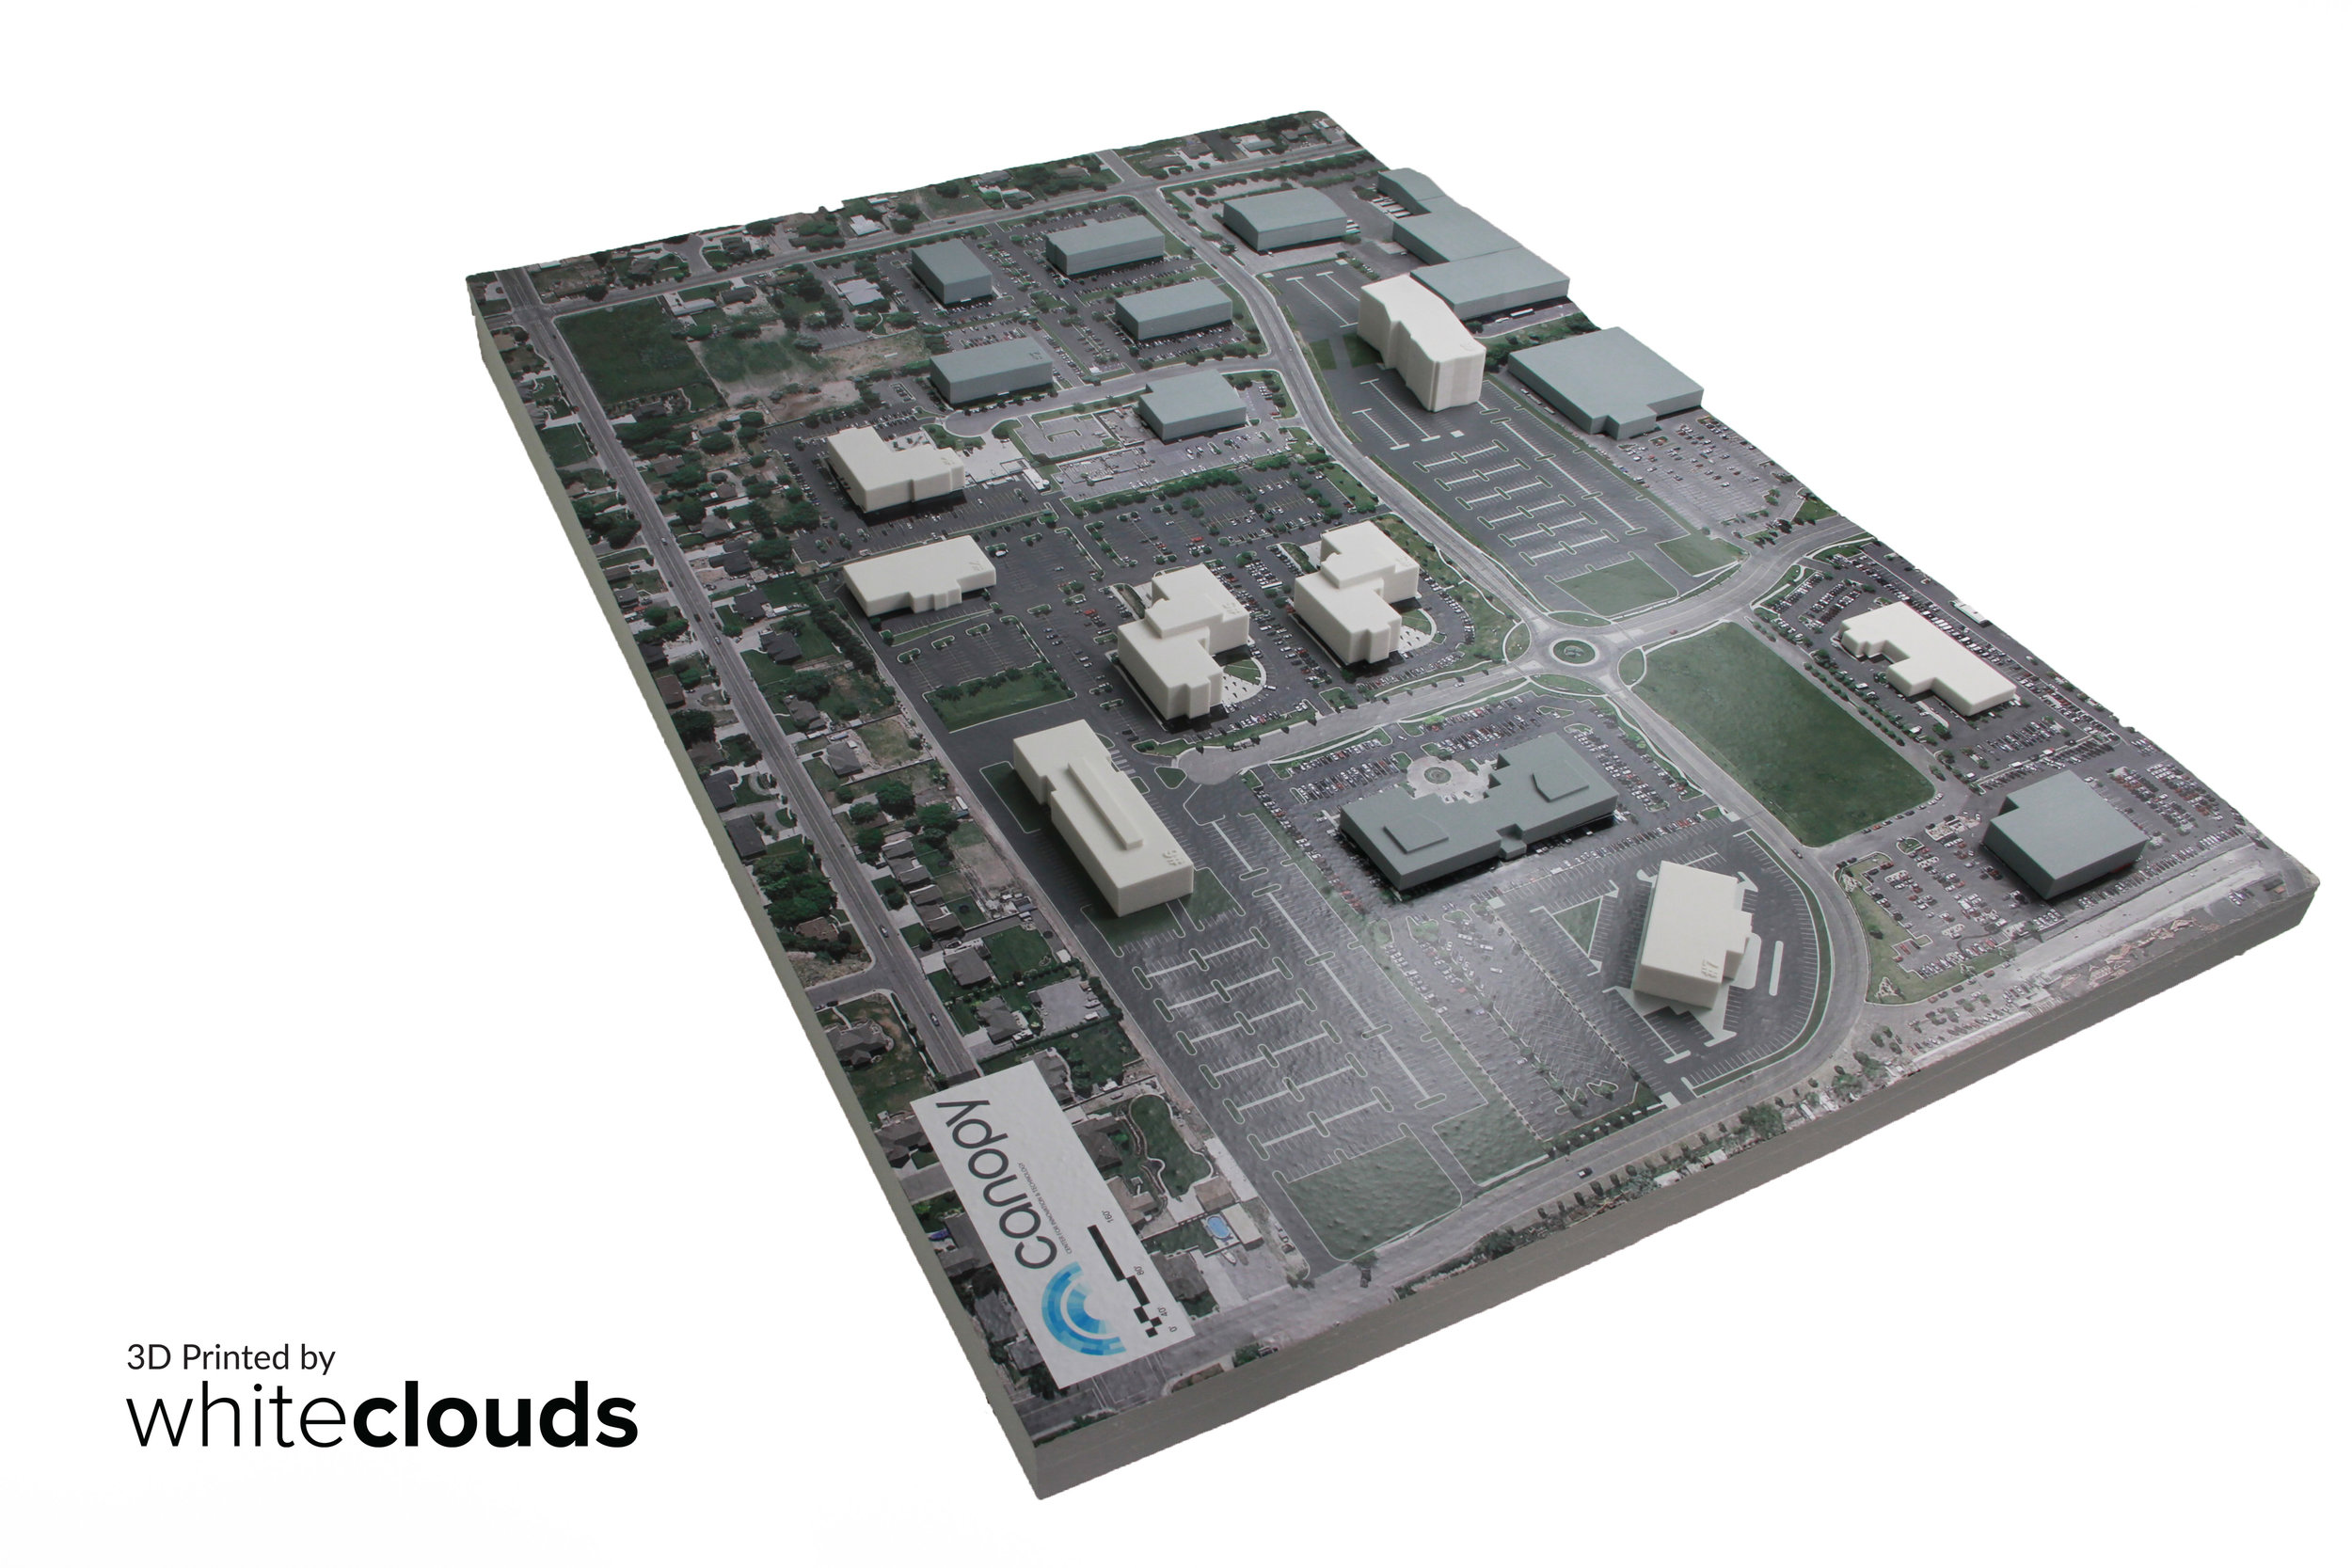 3D-Printed-WhiteClouds-Business-District-Archetectural-Canopy-(Topography)-1.JPG